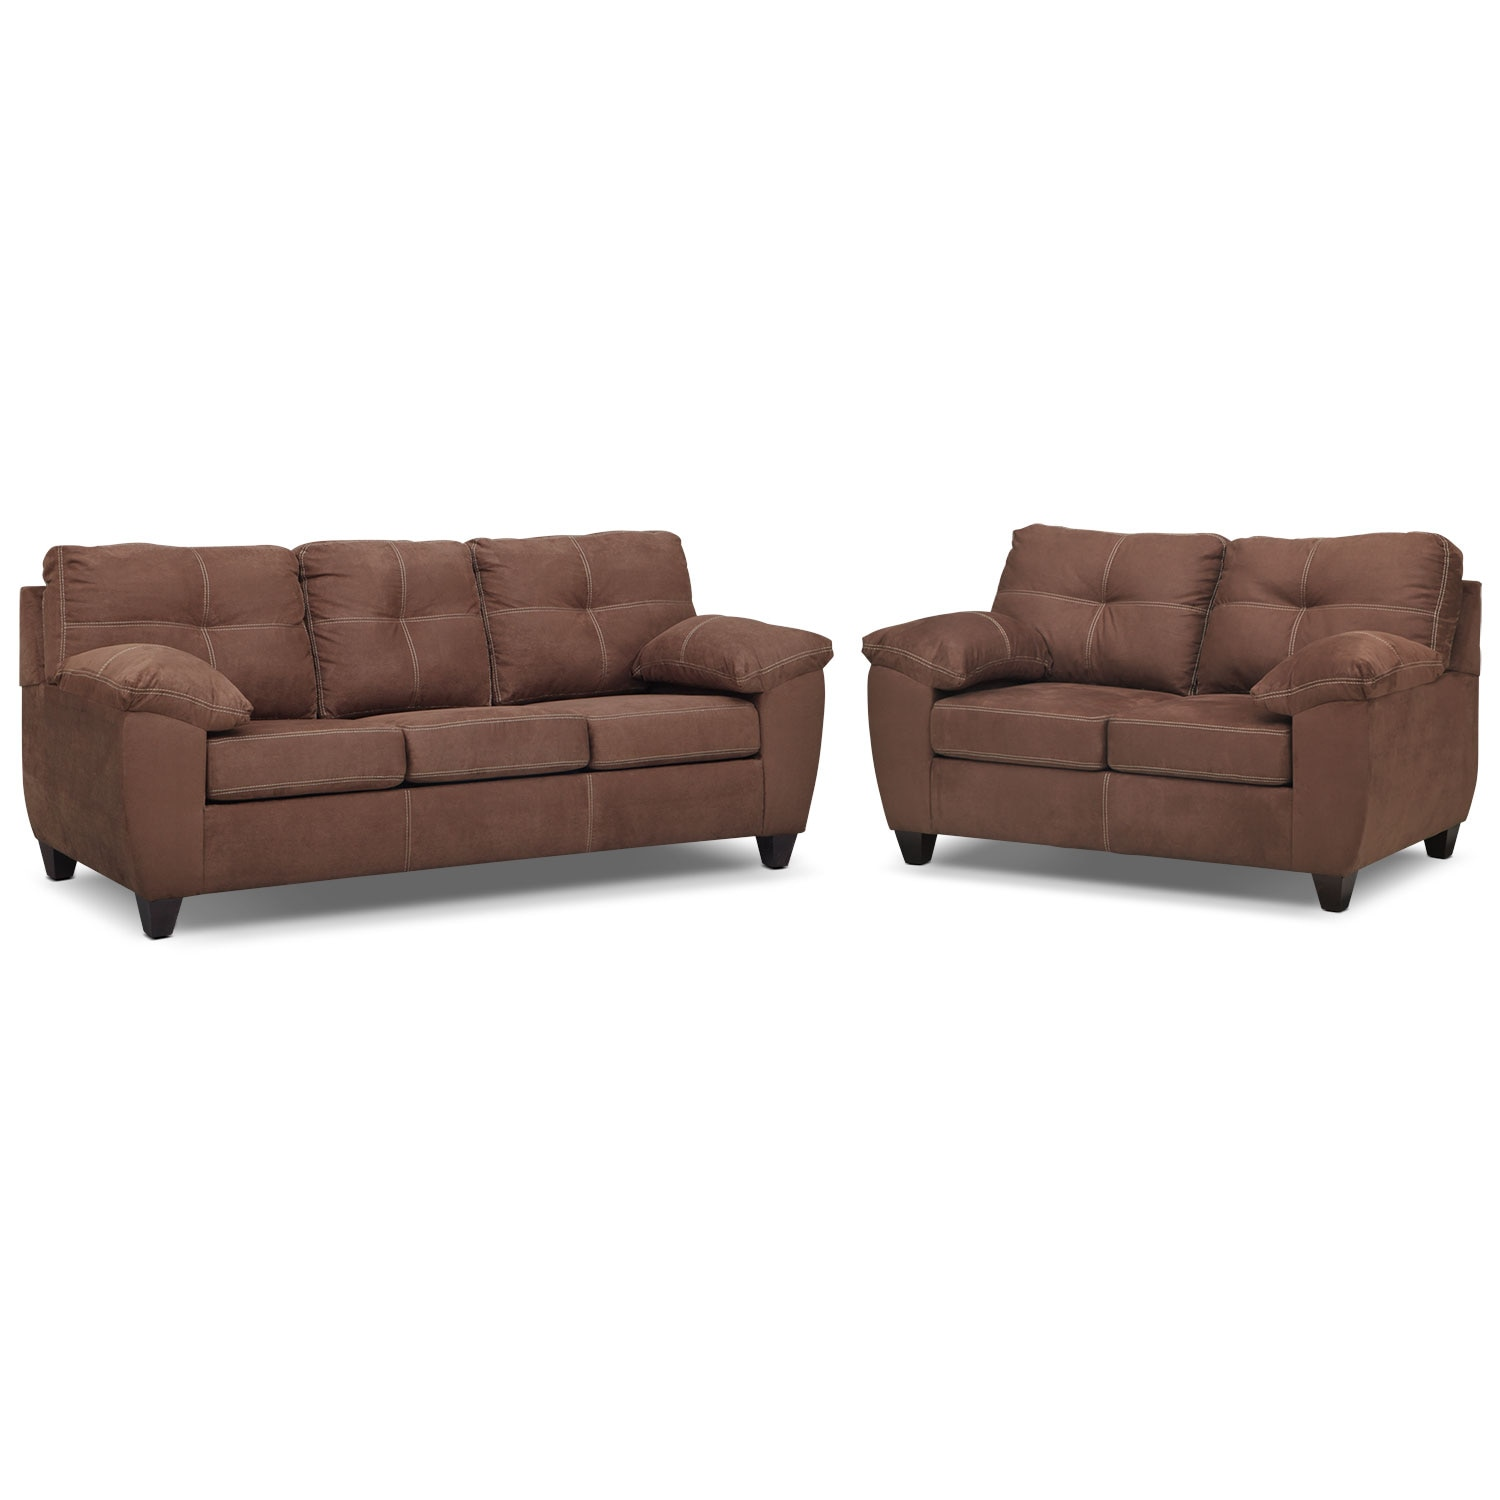 Living Room Furniture - Rialto Sofa and Loveseat Set - Coffee